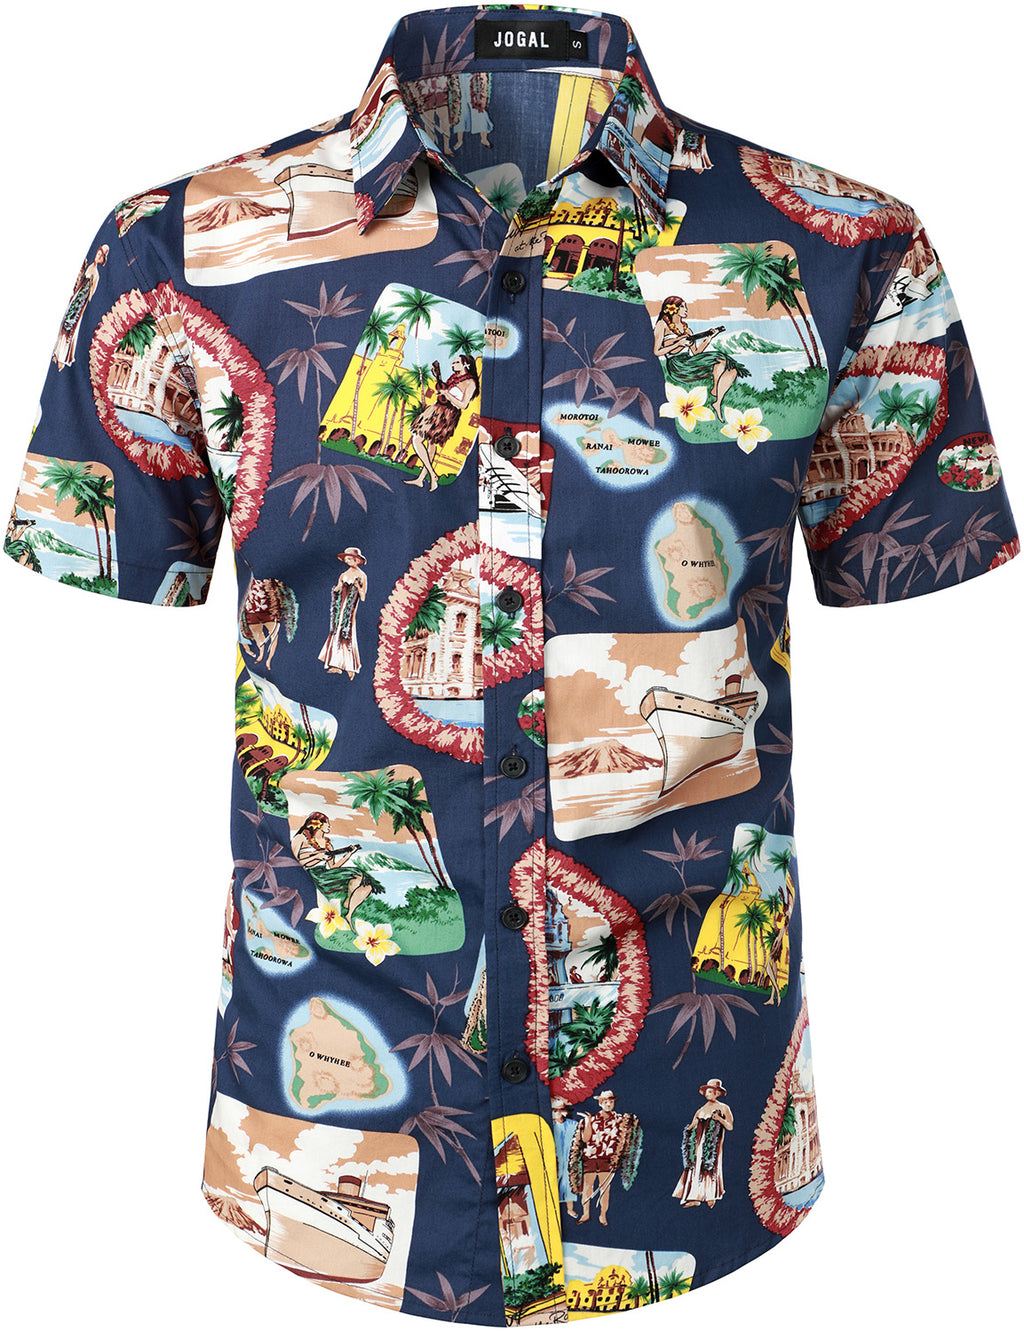 JOGAL Men's Beach Aloha Casual Button Down Short Sleeve Hawaiian Shirt